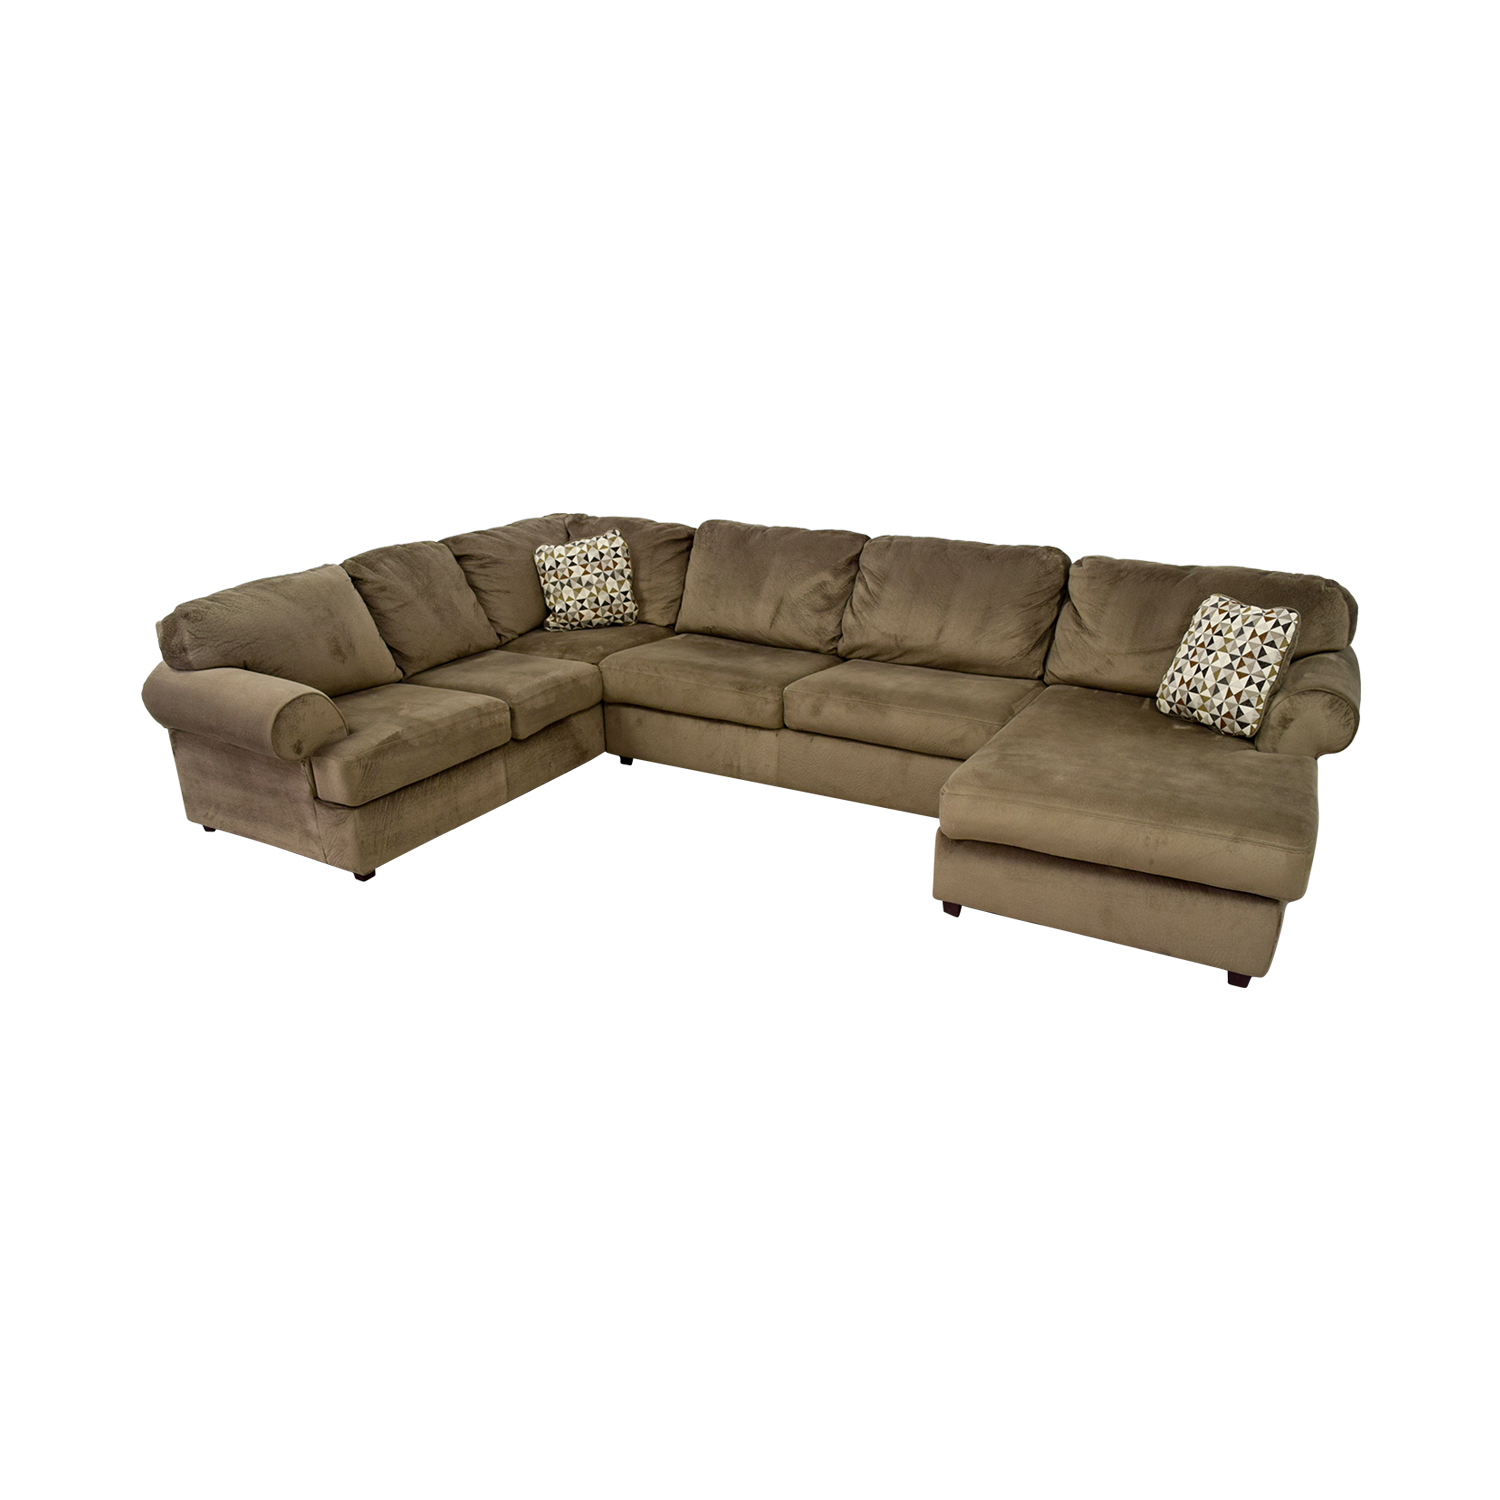 Ashley Furniture Ashley Furniture Jessa Place Sectional for sale